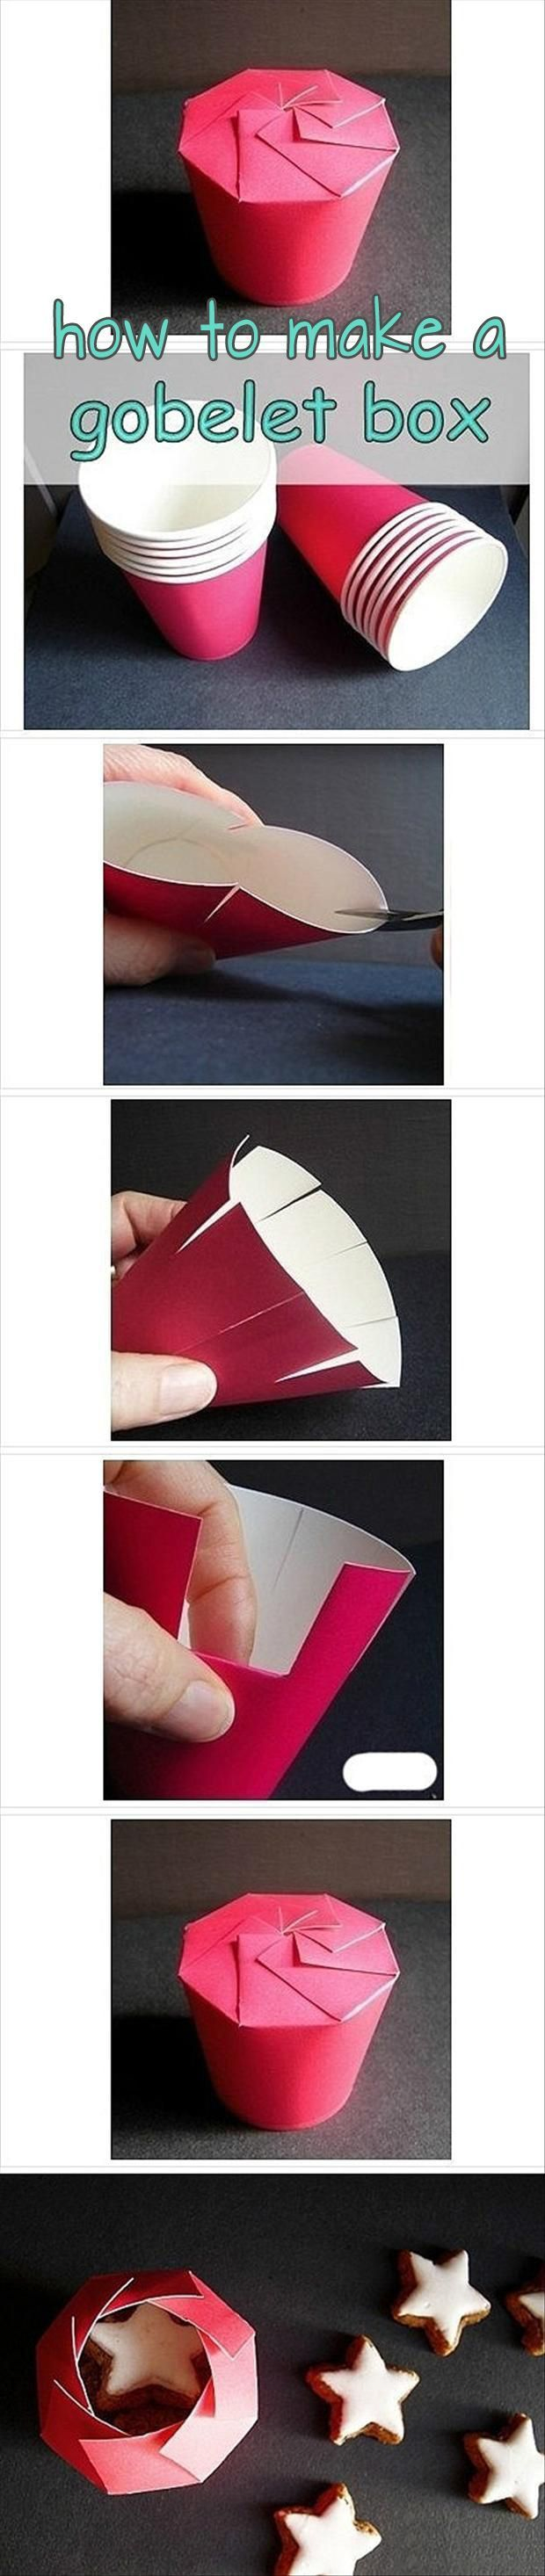 a how to make a box to give muffins or cookies.  Use a paper drinking cup in any color, cut off the top, make some incisions in the sides and presto!